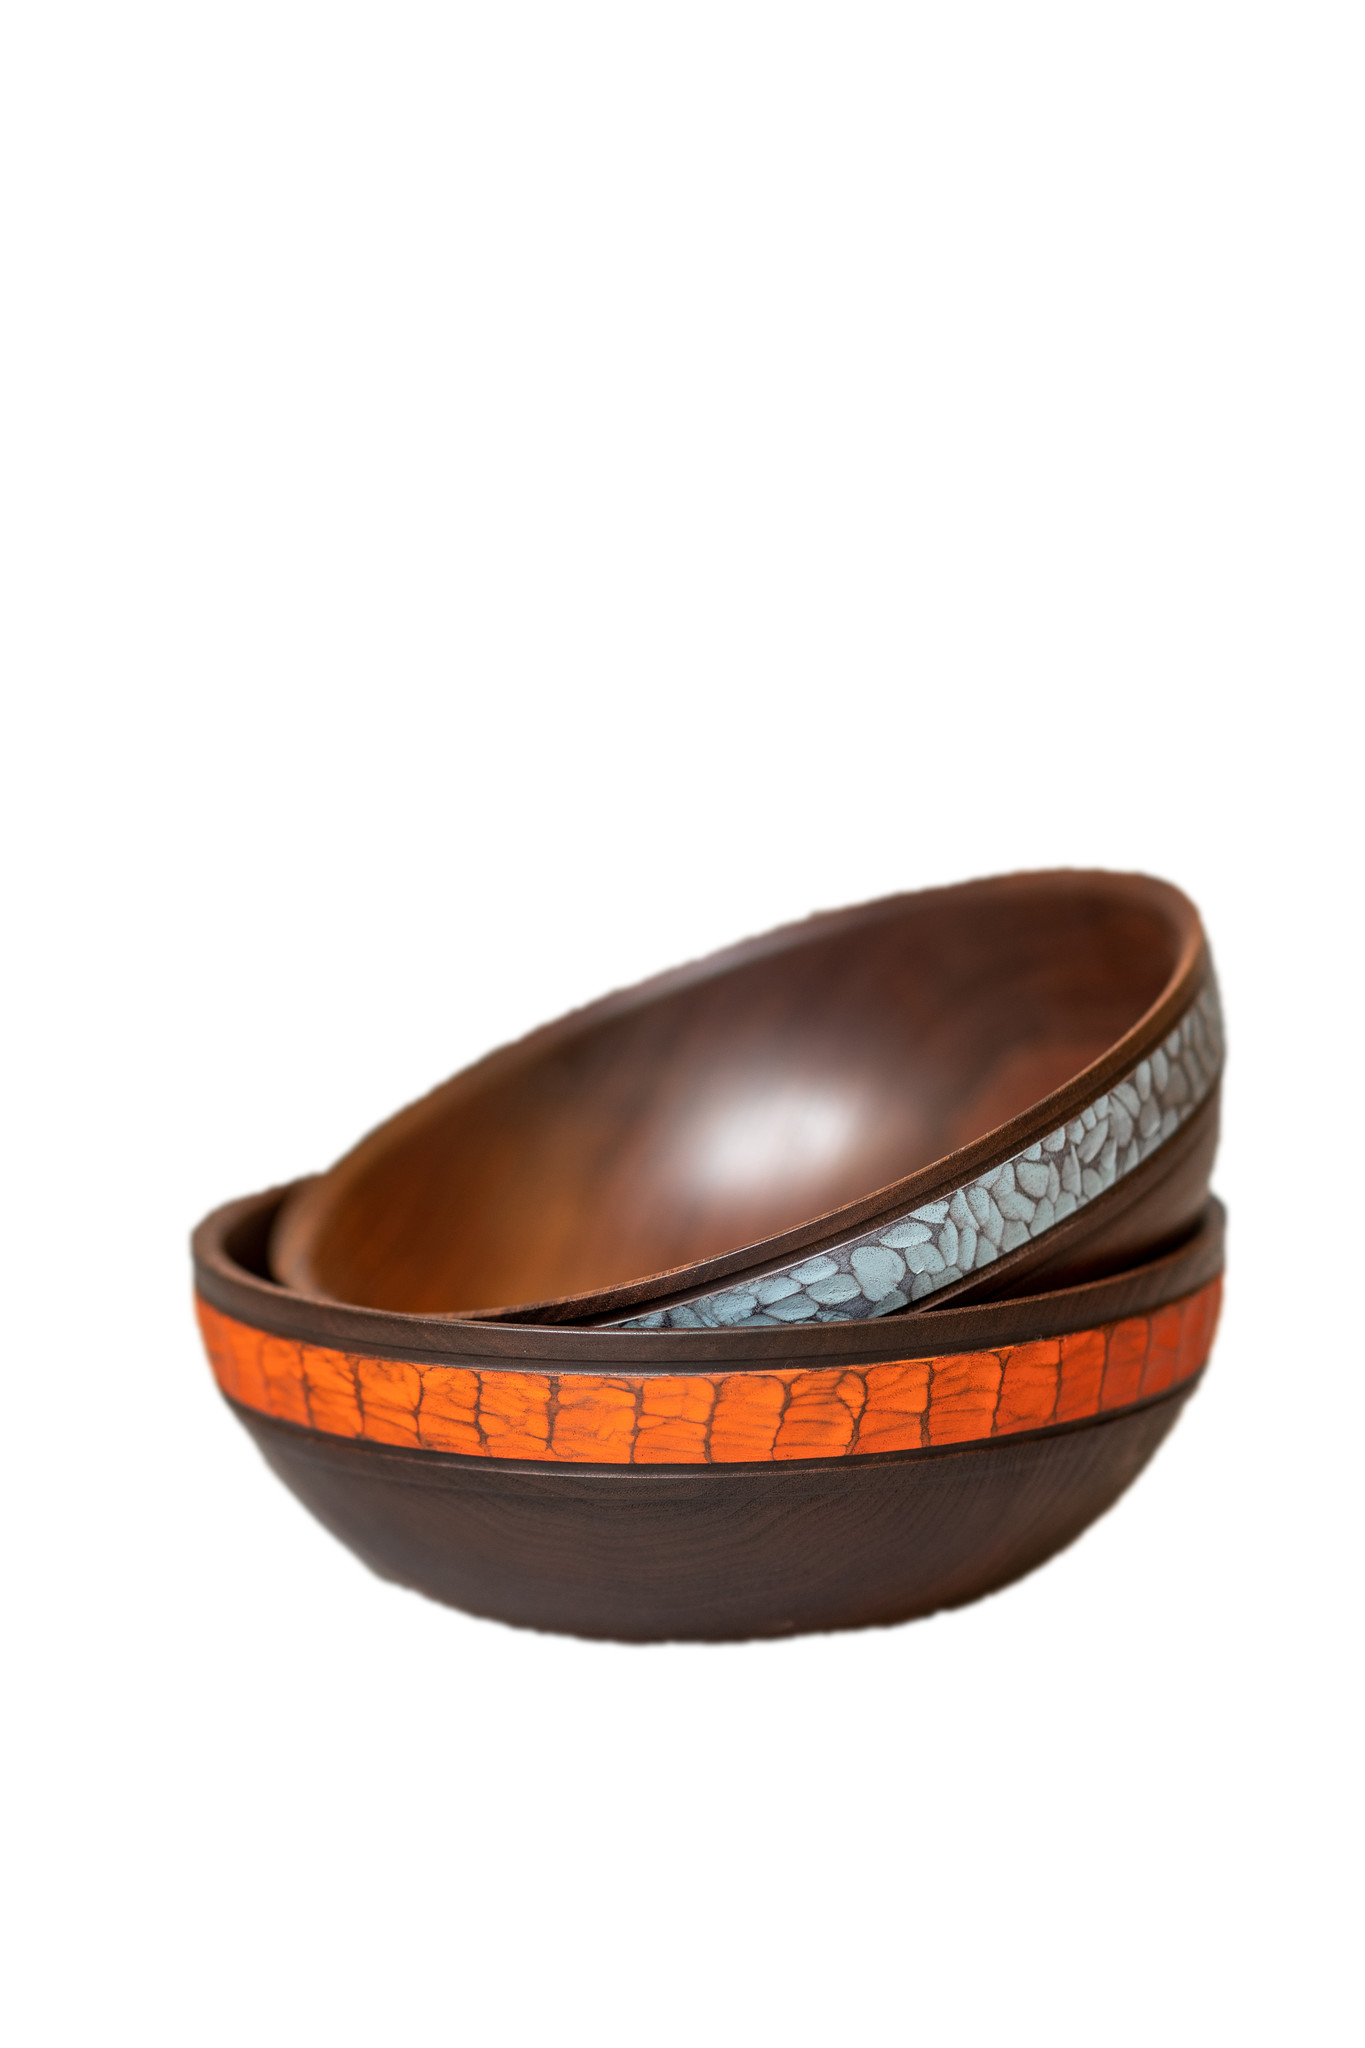 Wooden Bowl-4